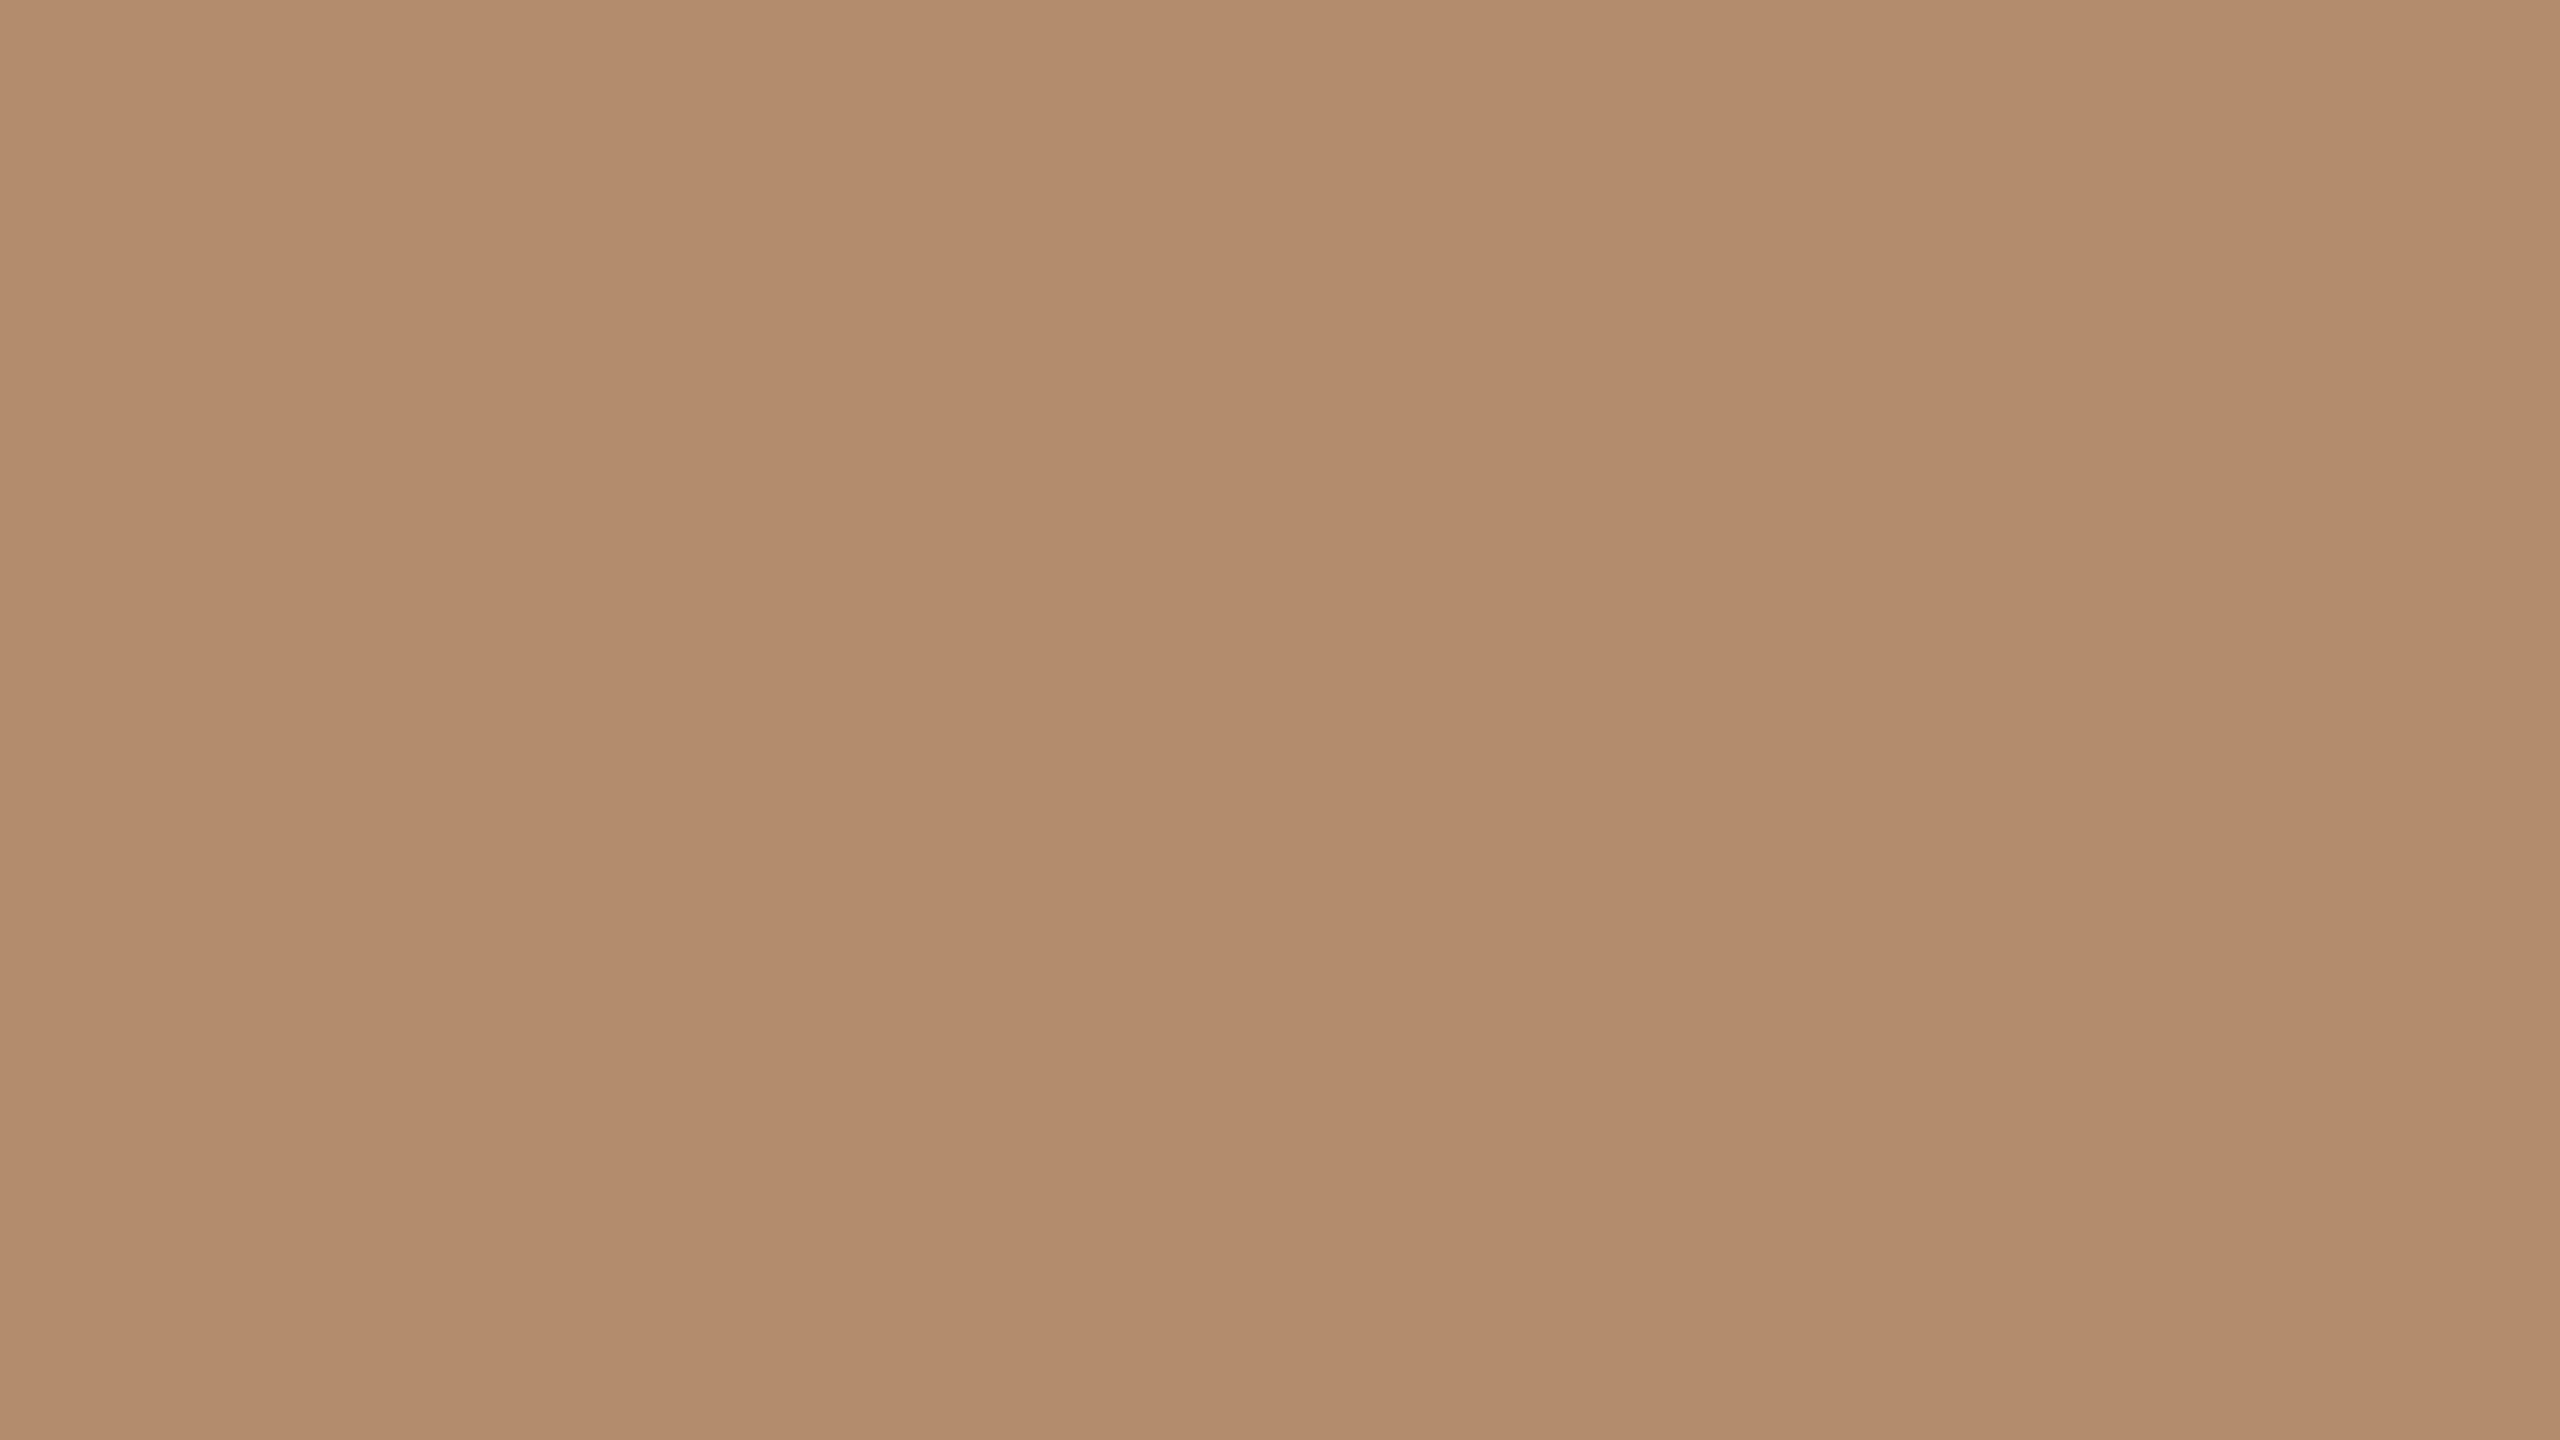 2560x1440 Light Taupe Solid Color Background